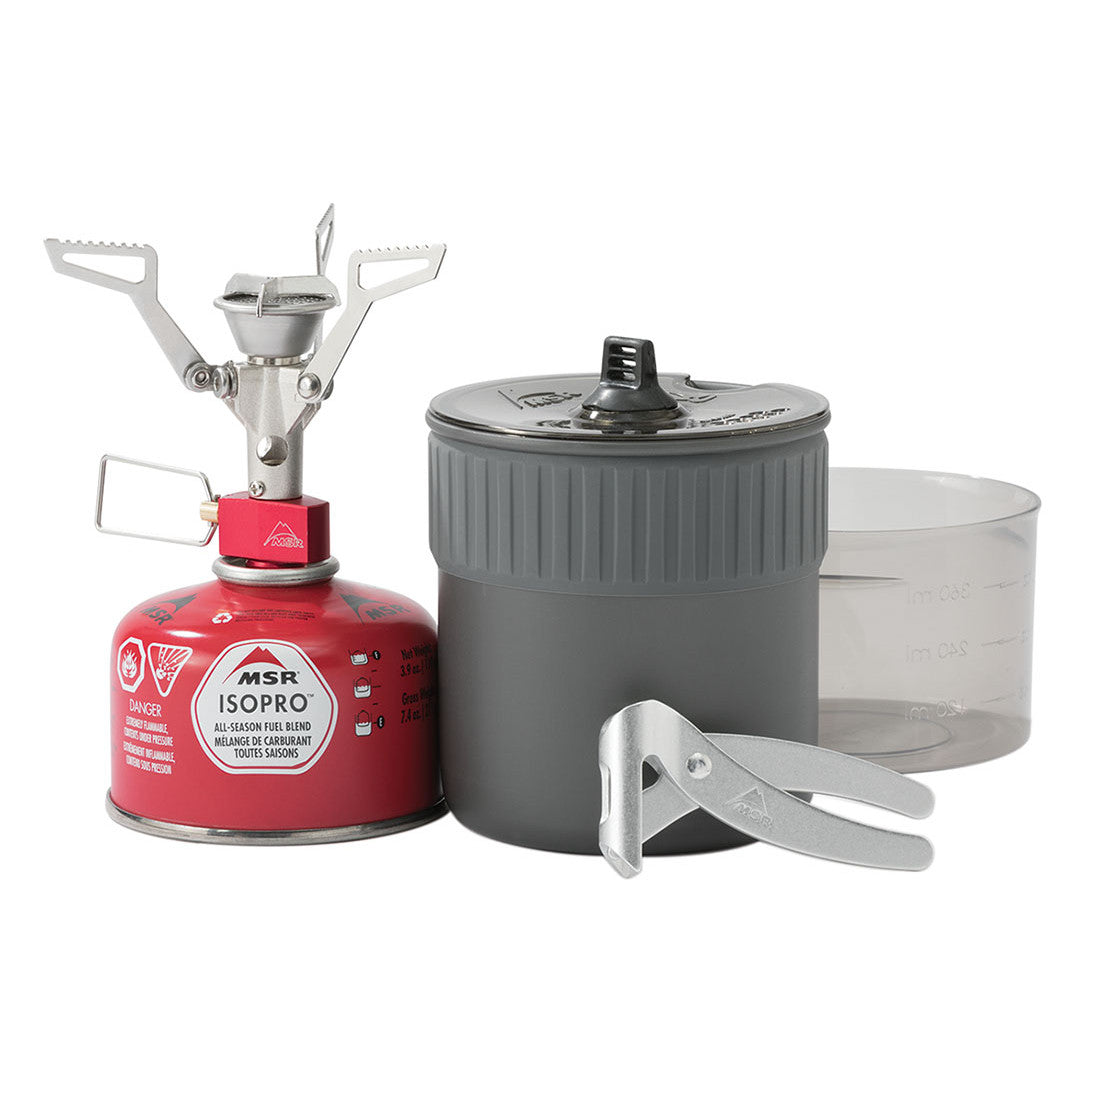 MSR PocketRocket 2 Mini Stove Kit with contents shown side by side